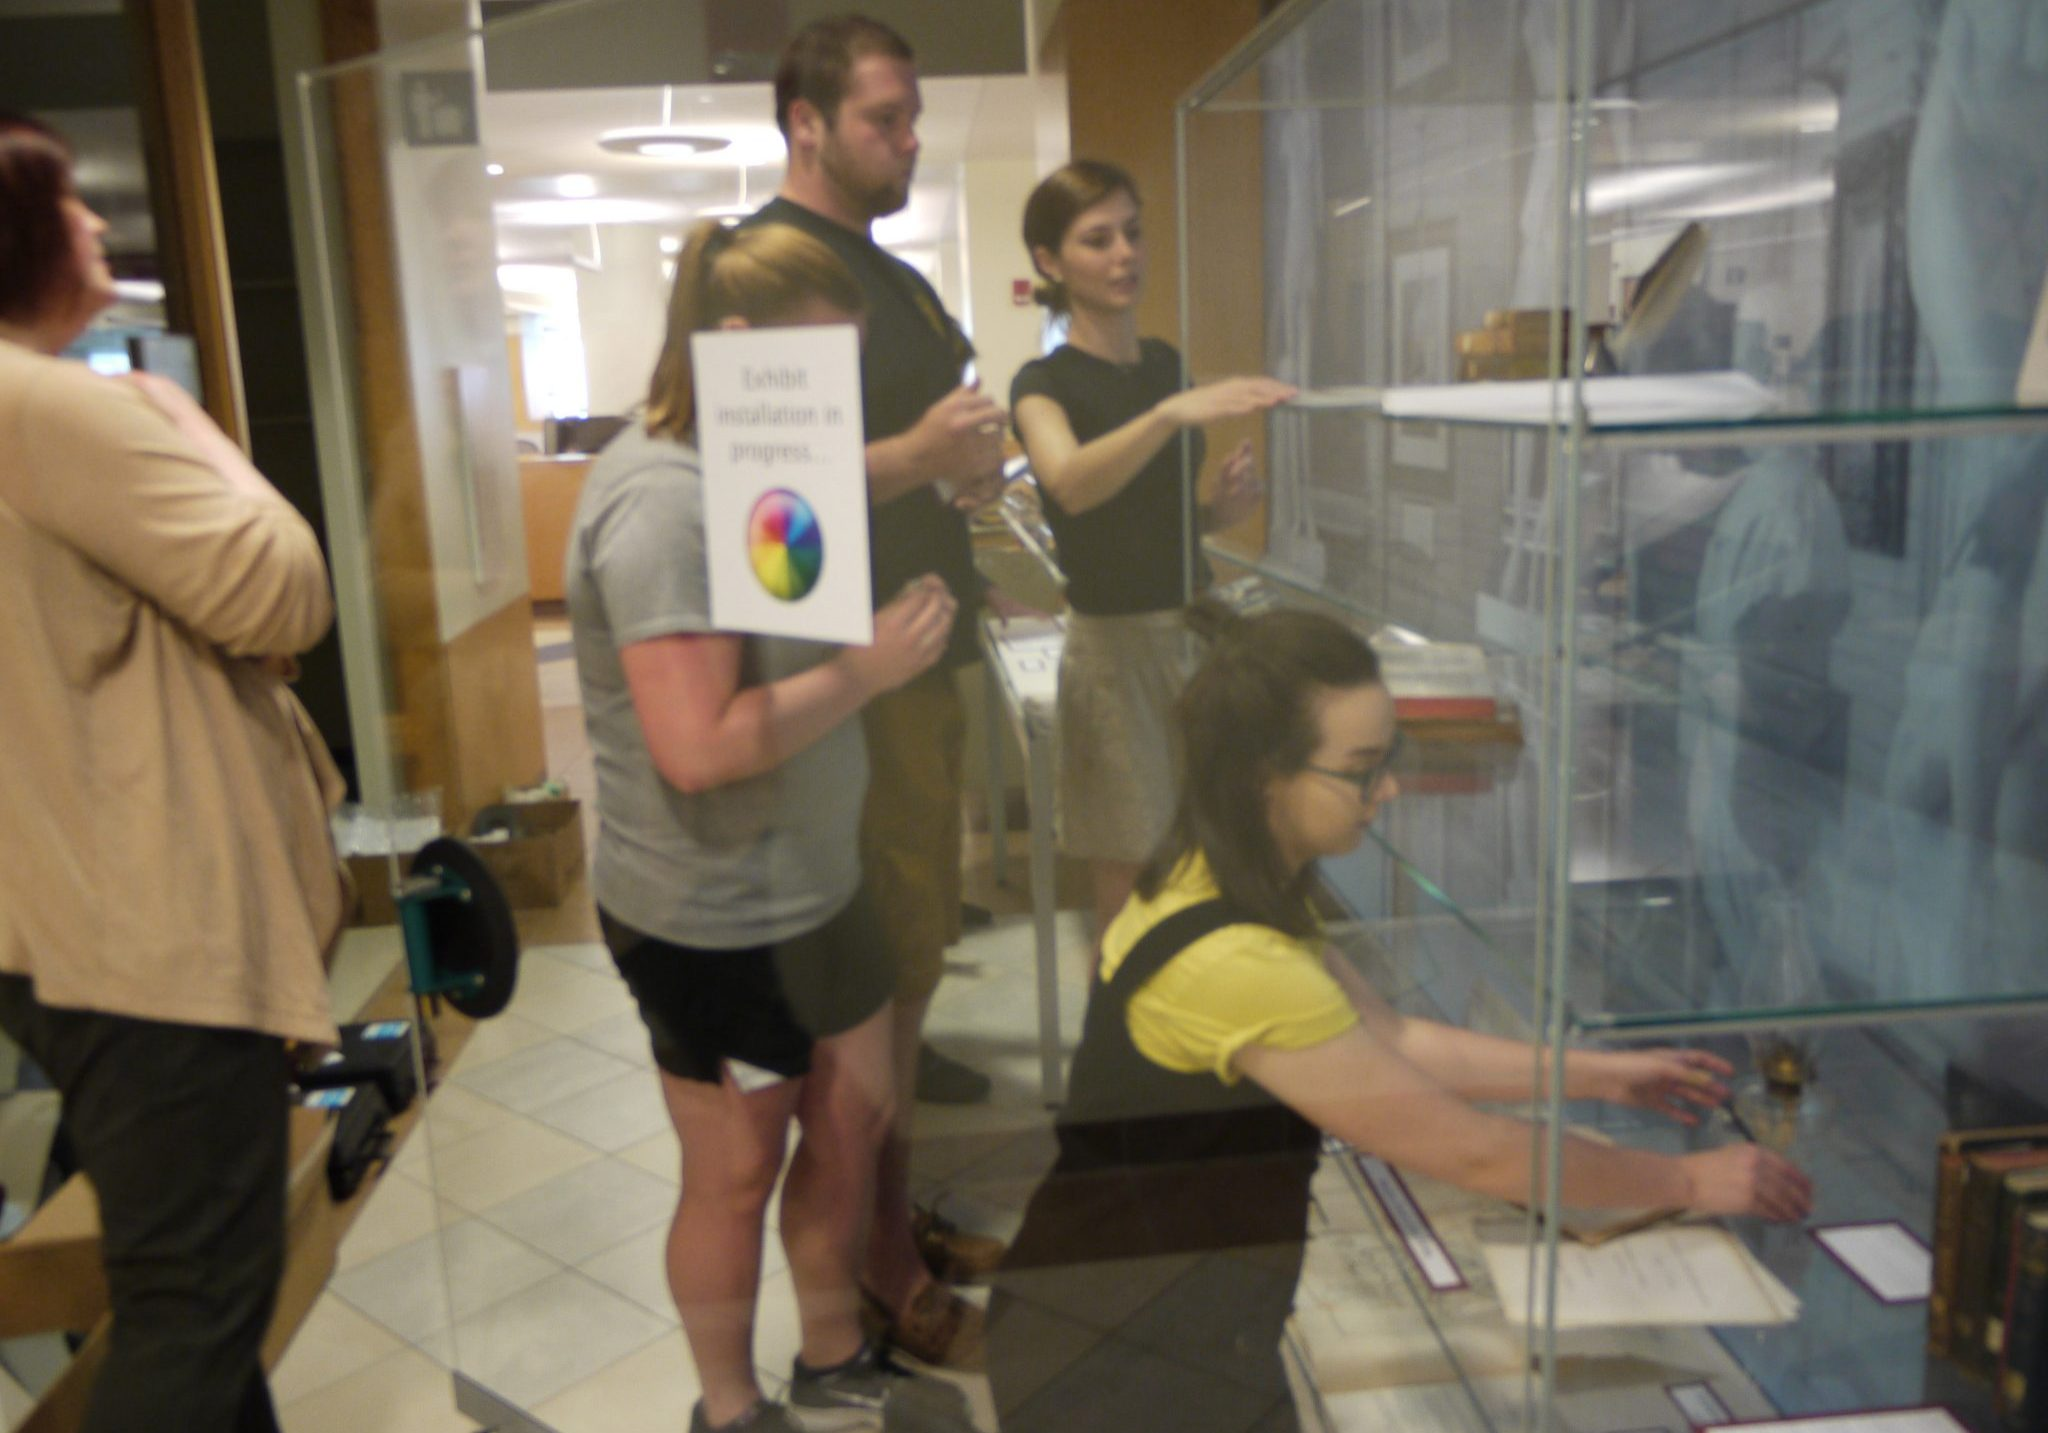 <p>Exhibit installation in Case library.</p><p>Photo By Emily Haines '17.</p>